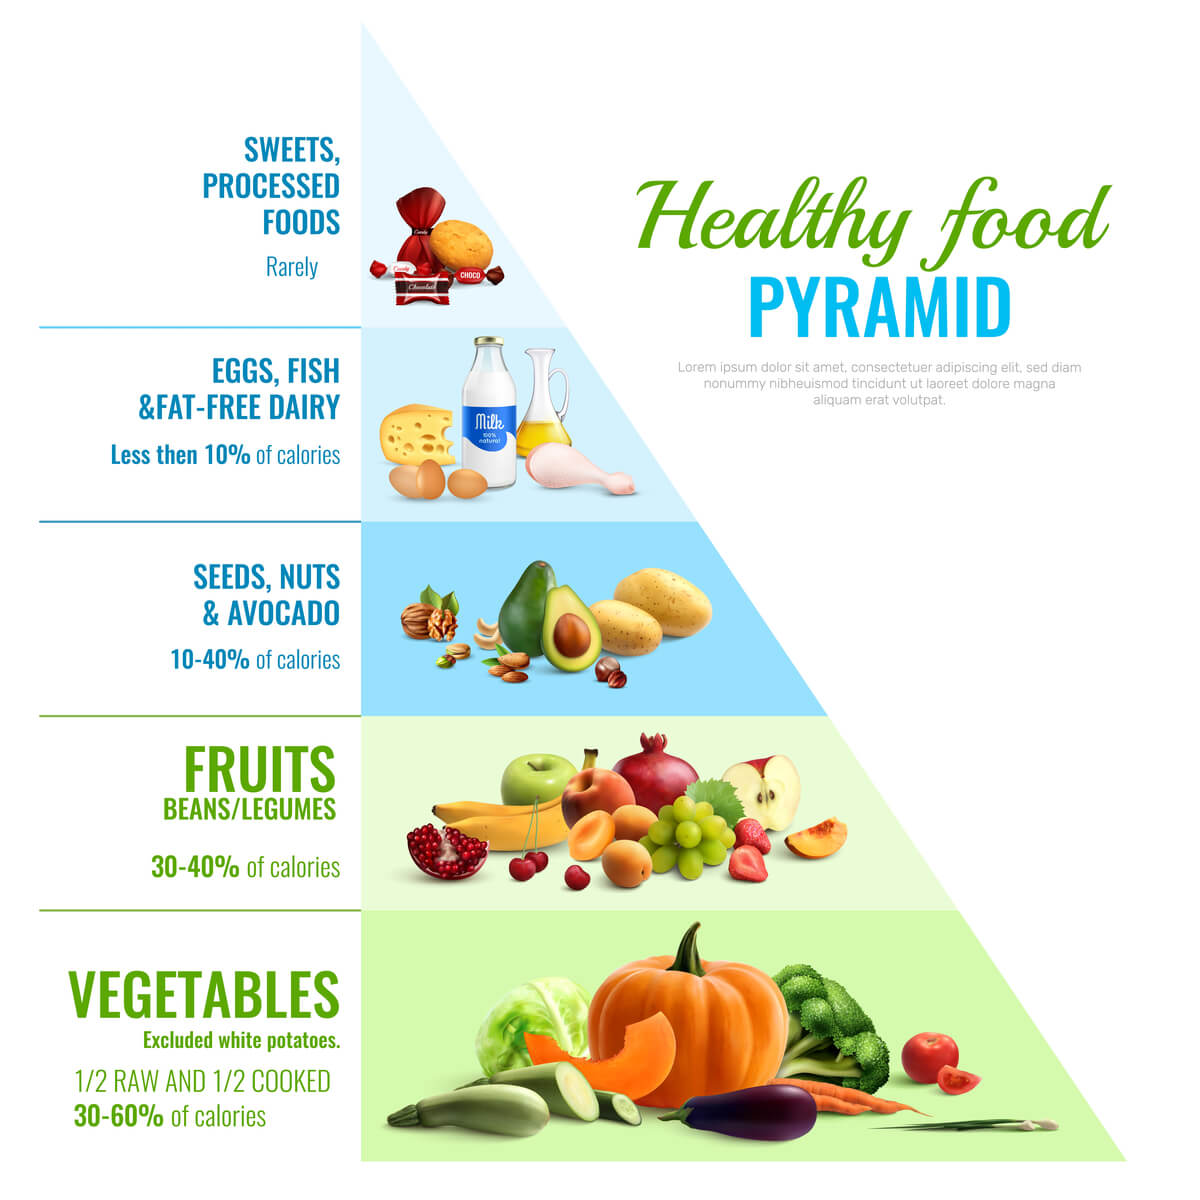 Healthy-Nutrition-Healthy-eating-pyramid-realistic-infographic-Montcalm